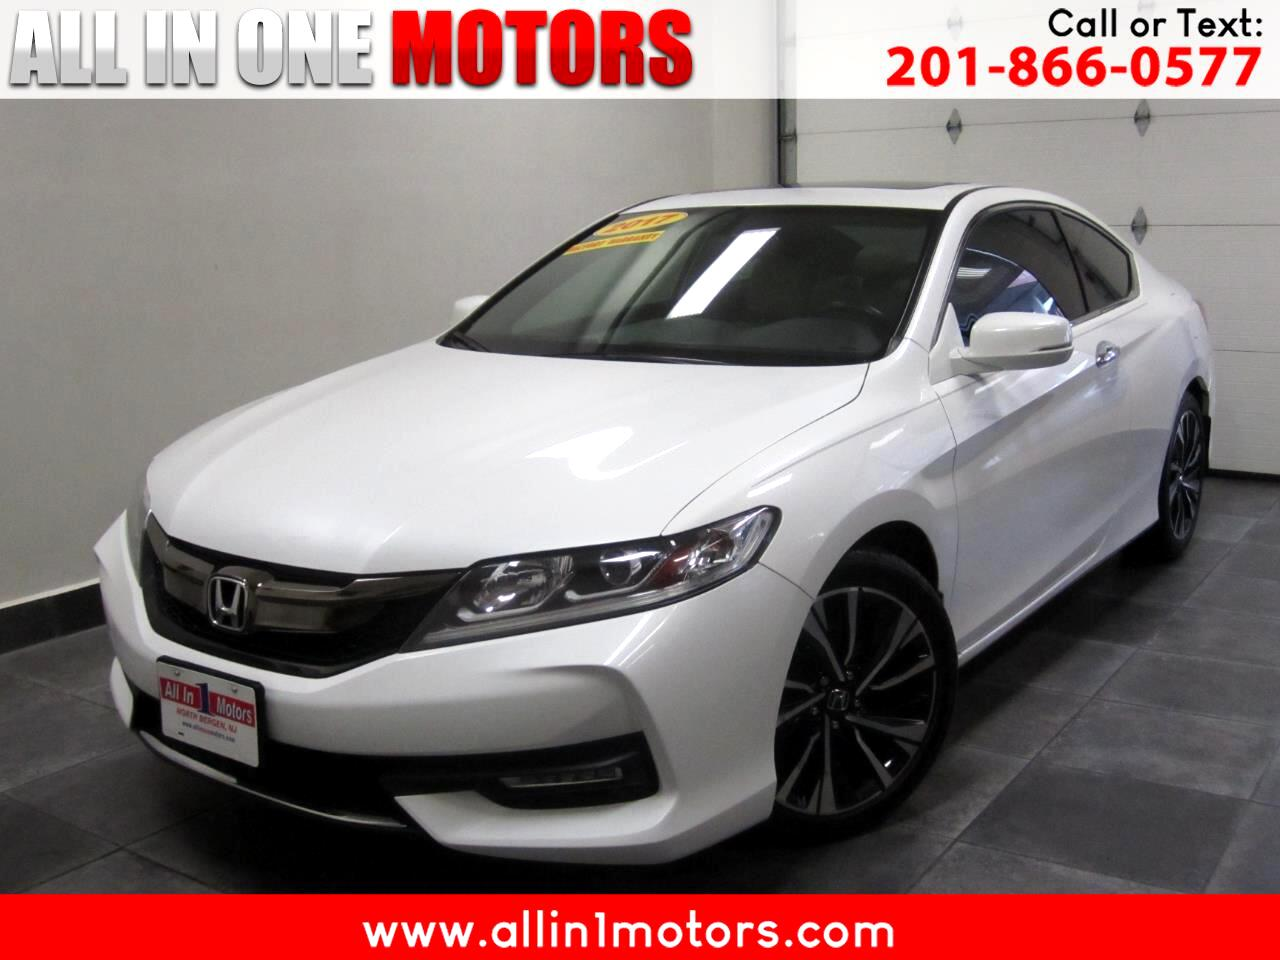 2017 Honda Accord Coupe EX-L CVT